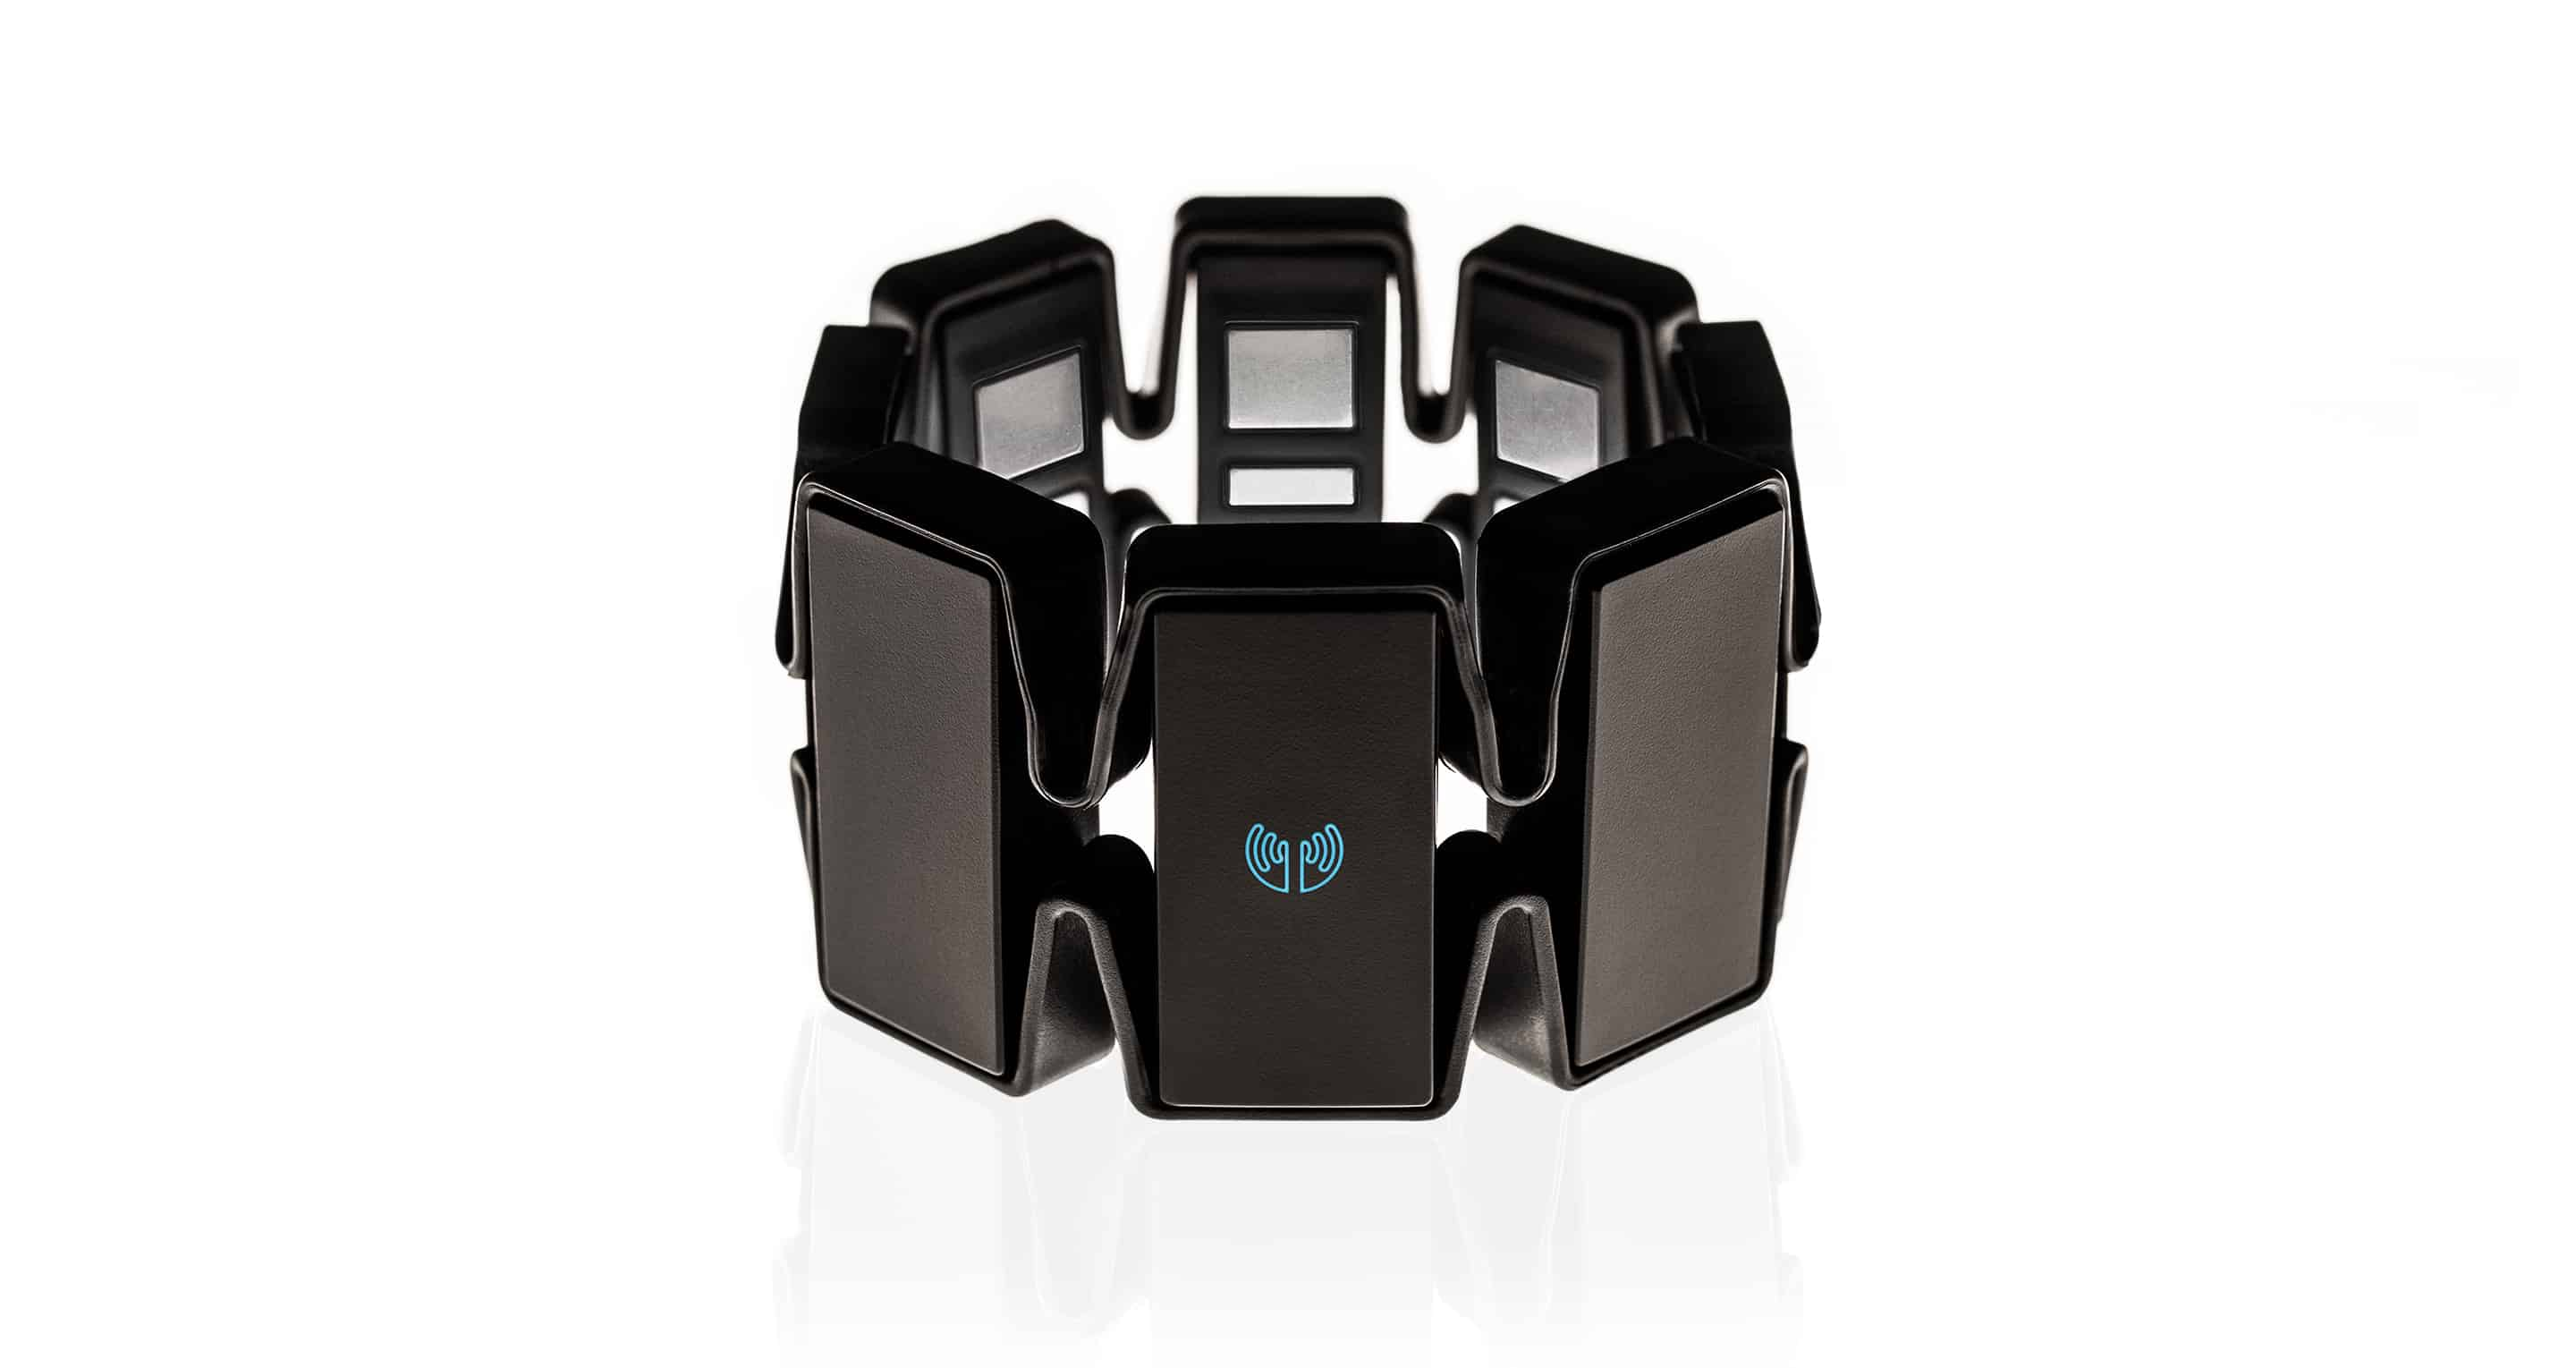 Myo Gesture Control Armband  Black Control With Hand Gestures